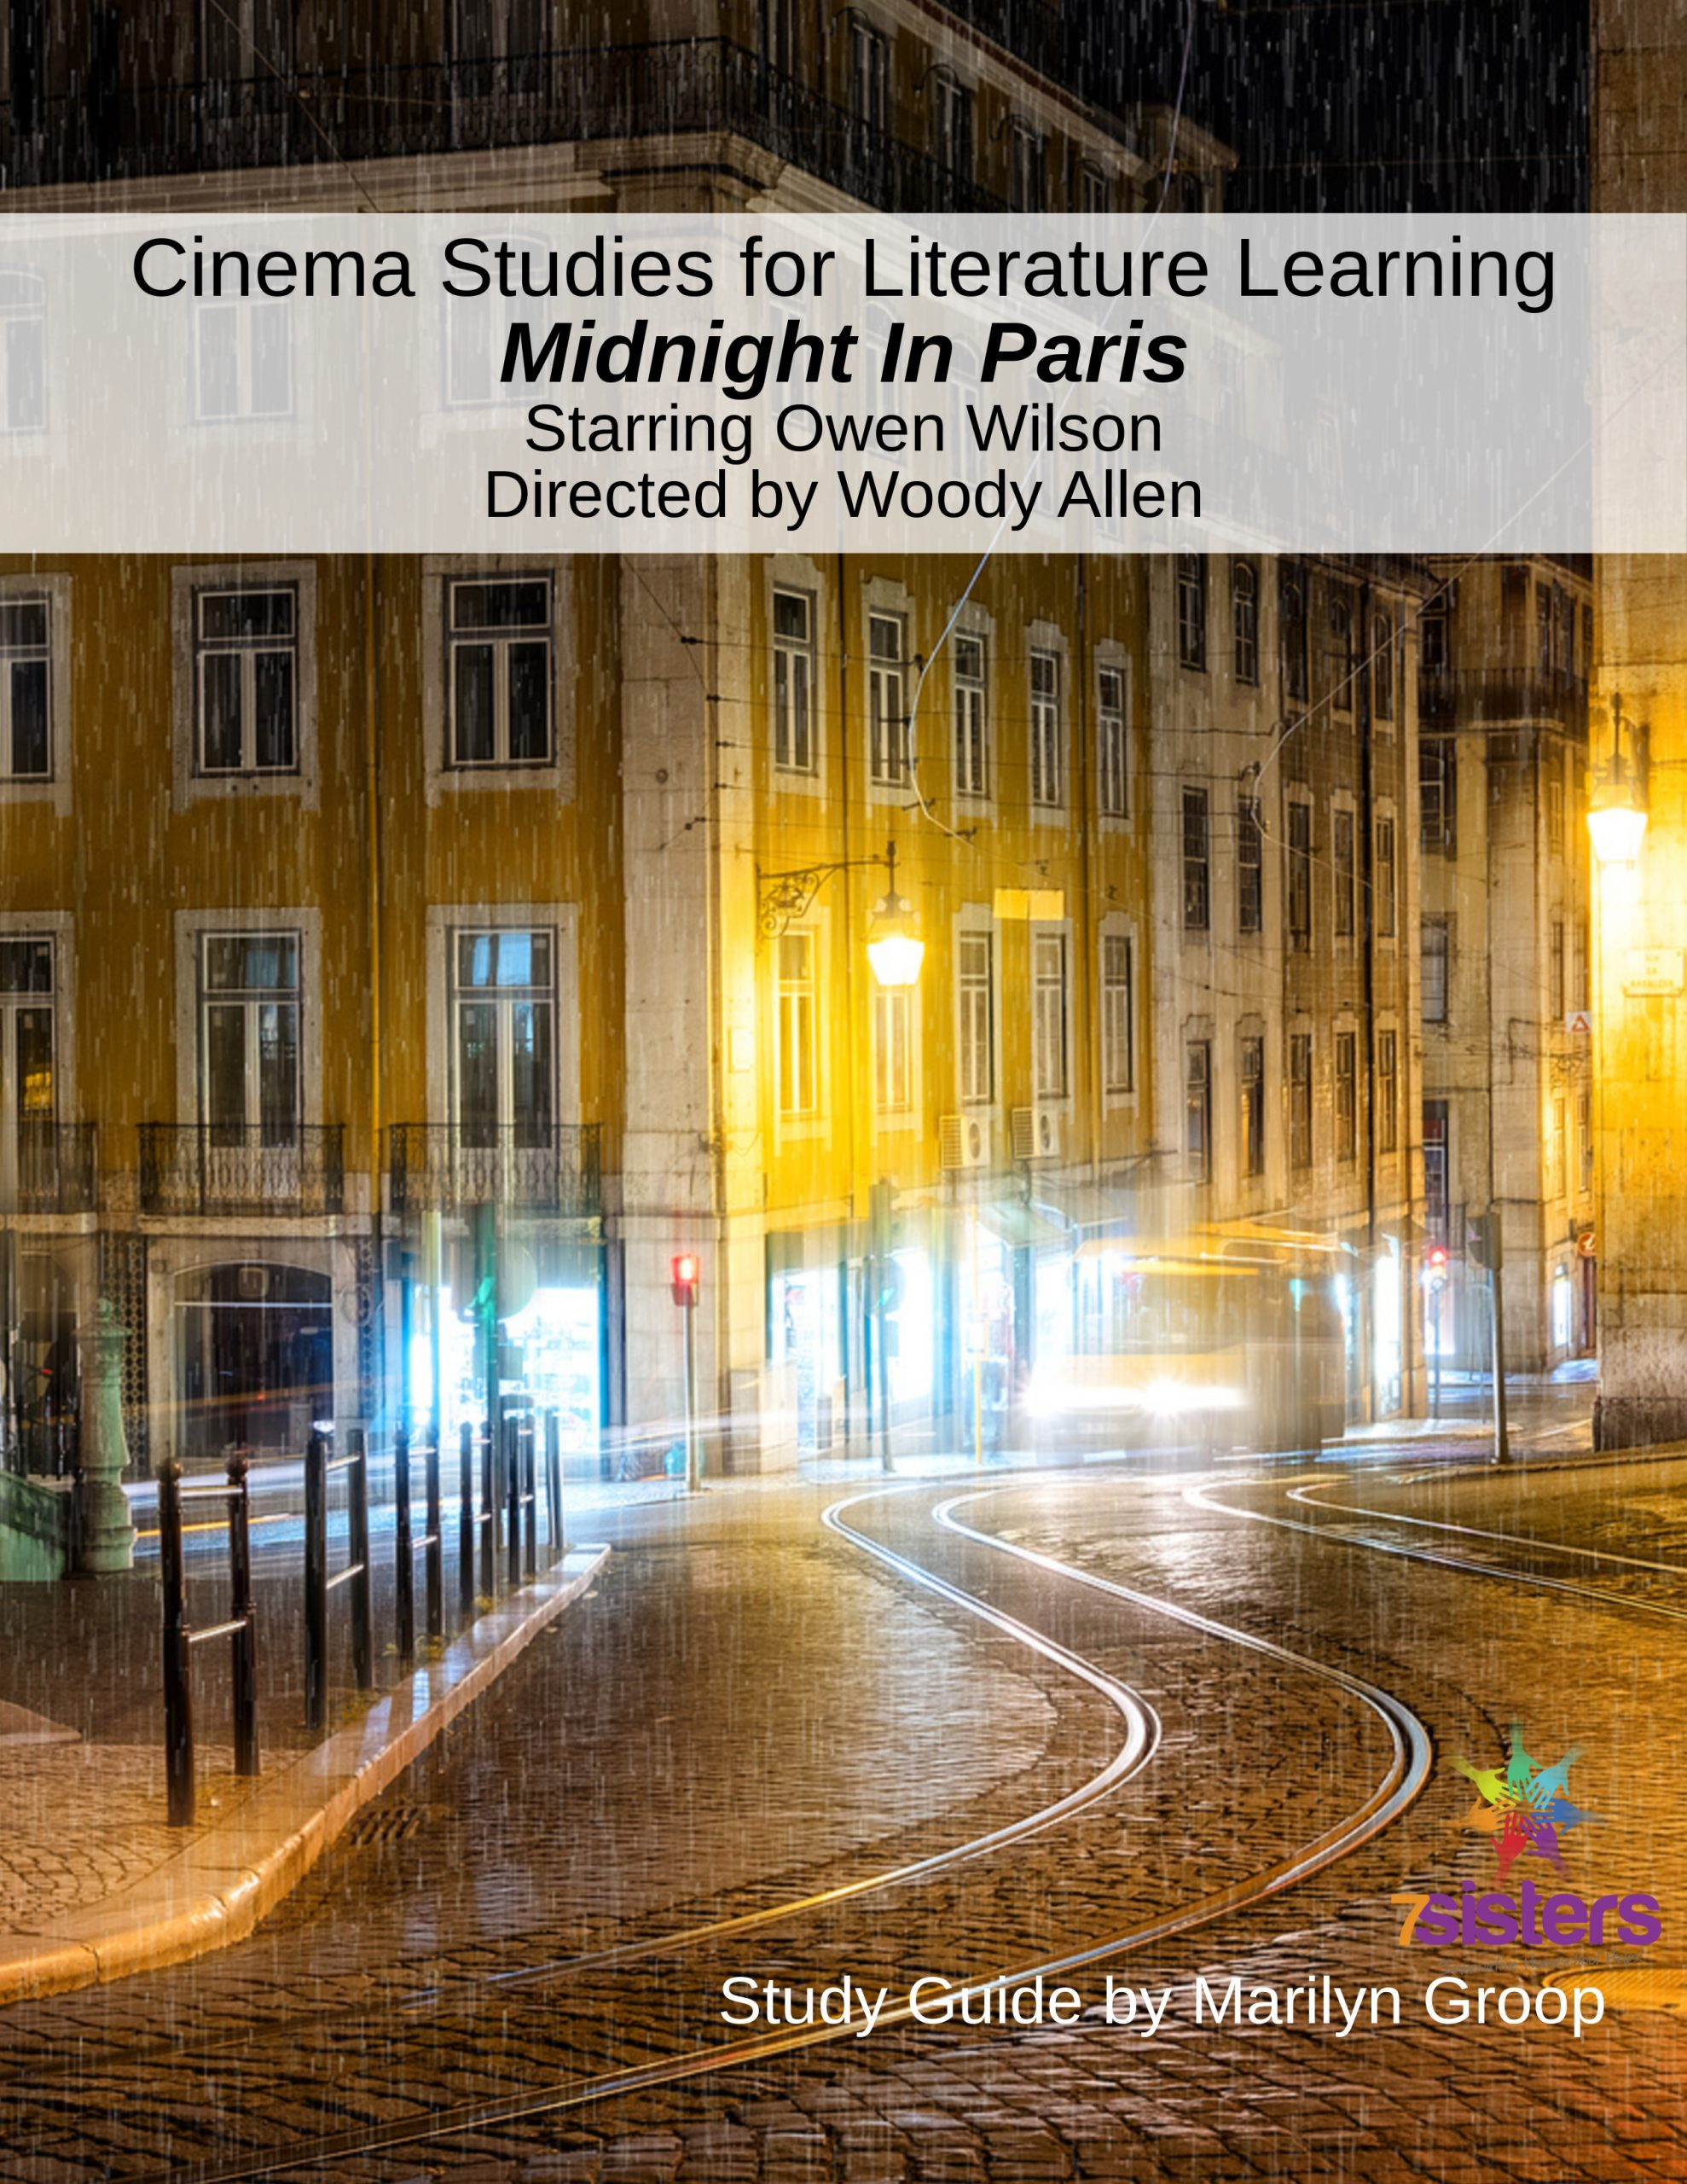 Cinema Study Guide for Midnight in Paris